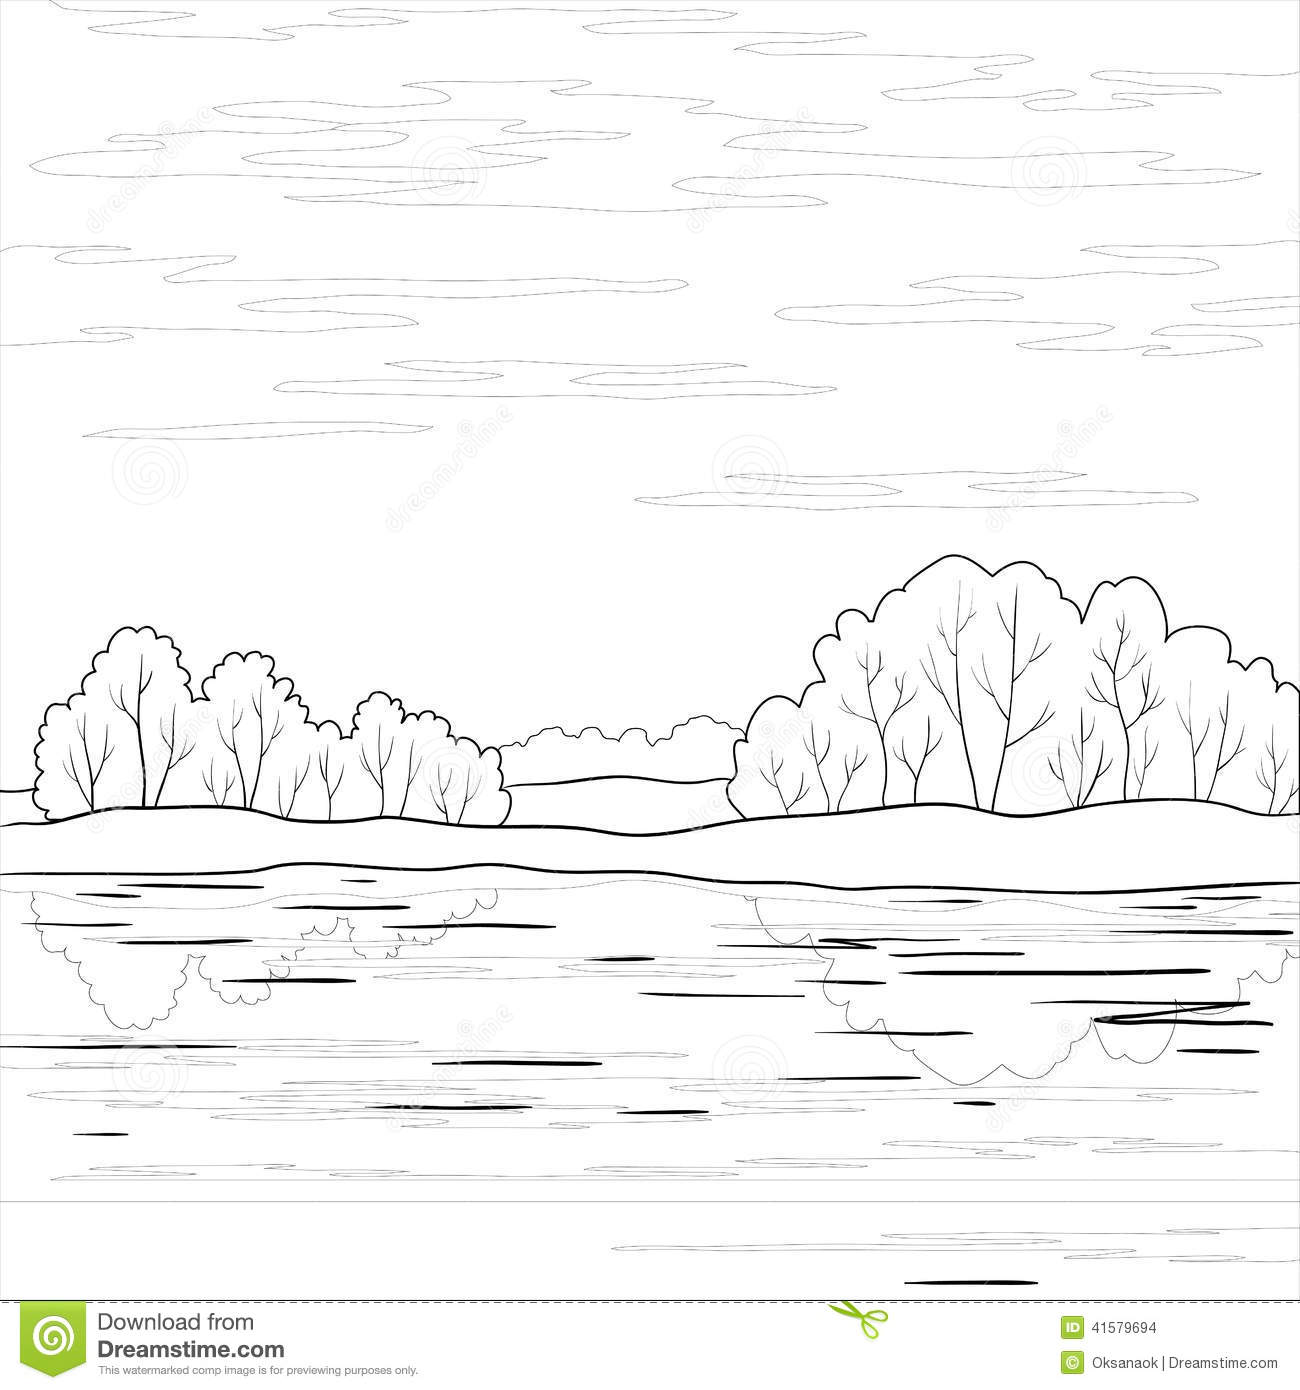 River clipart outline graphic royalty free download River clipart outline - ClipartFest graphic royalty free download